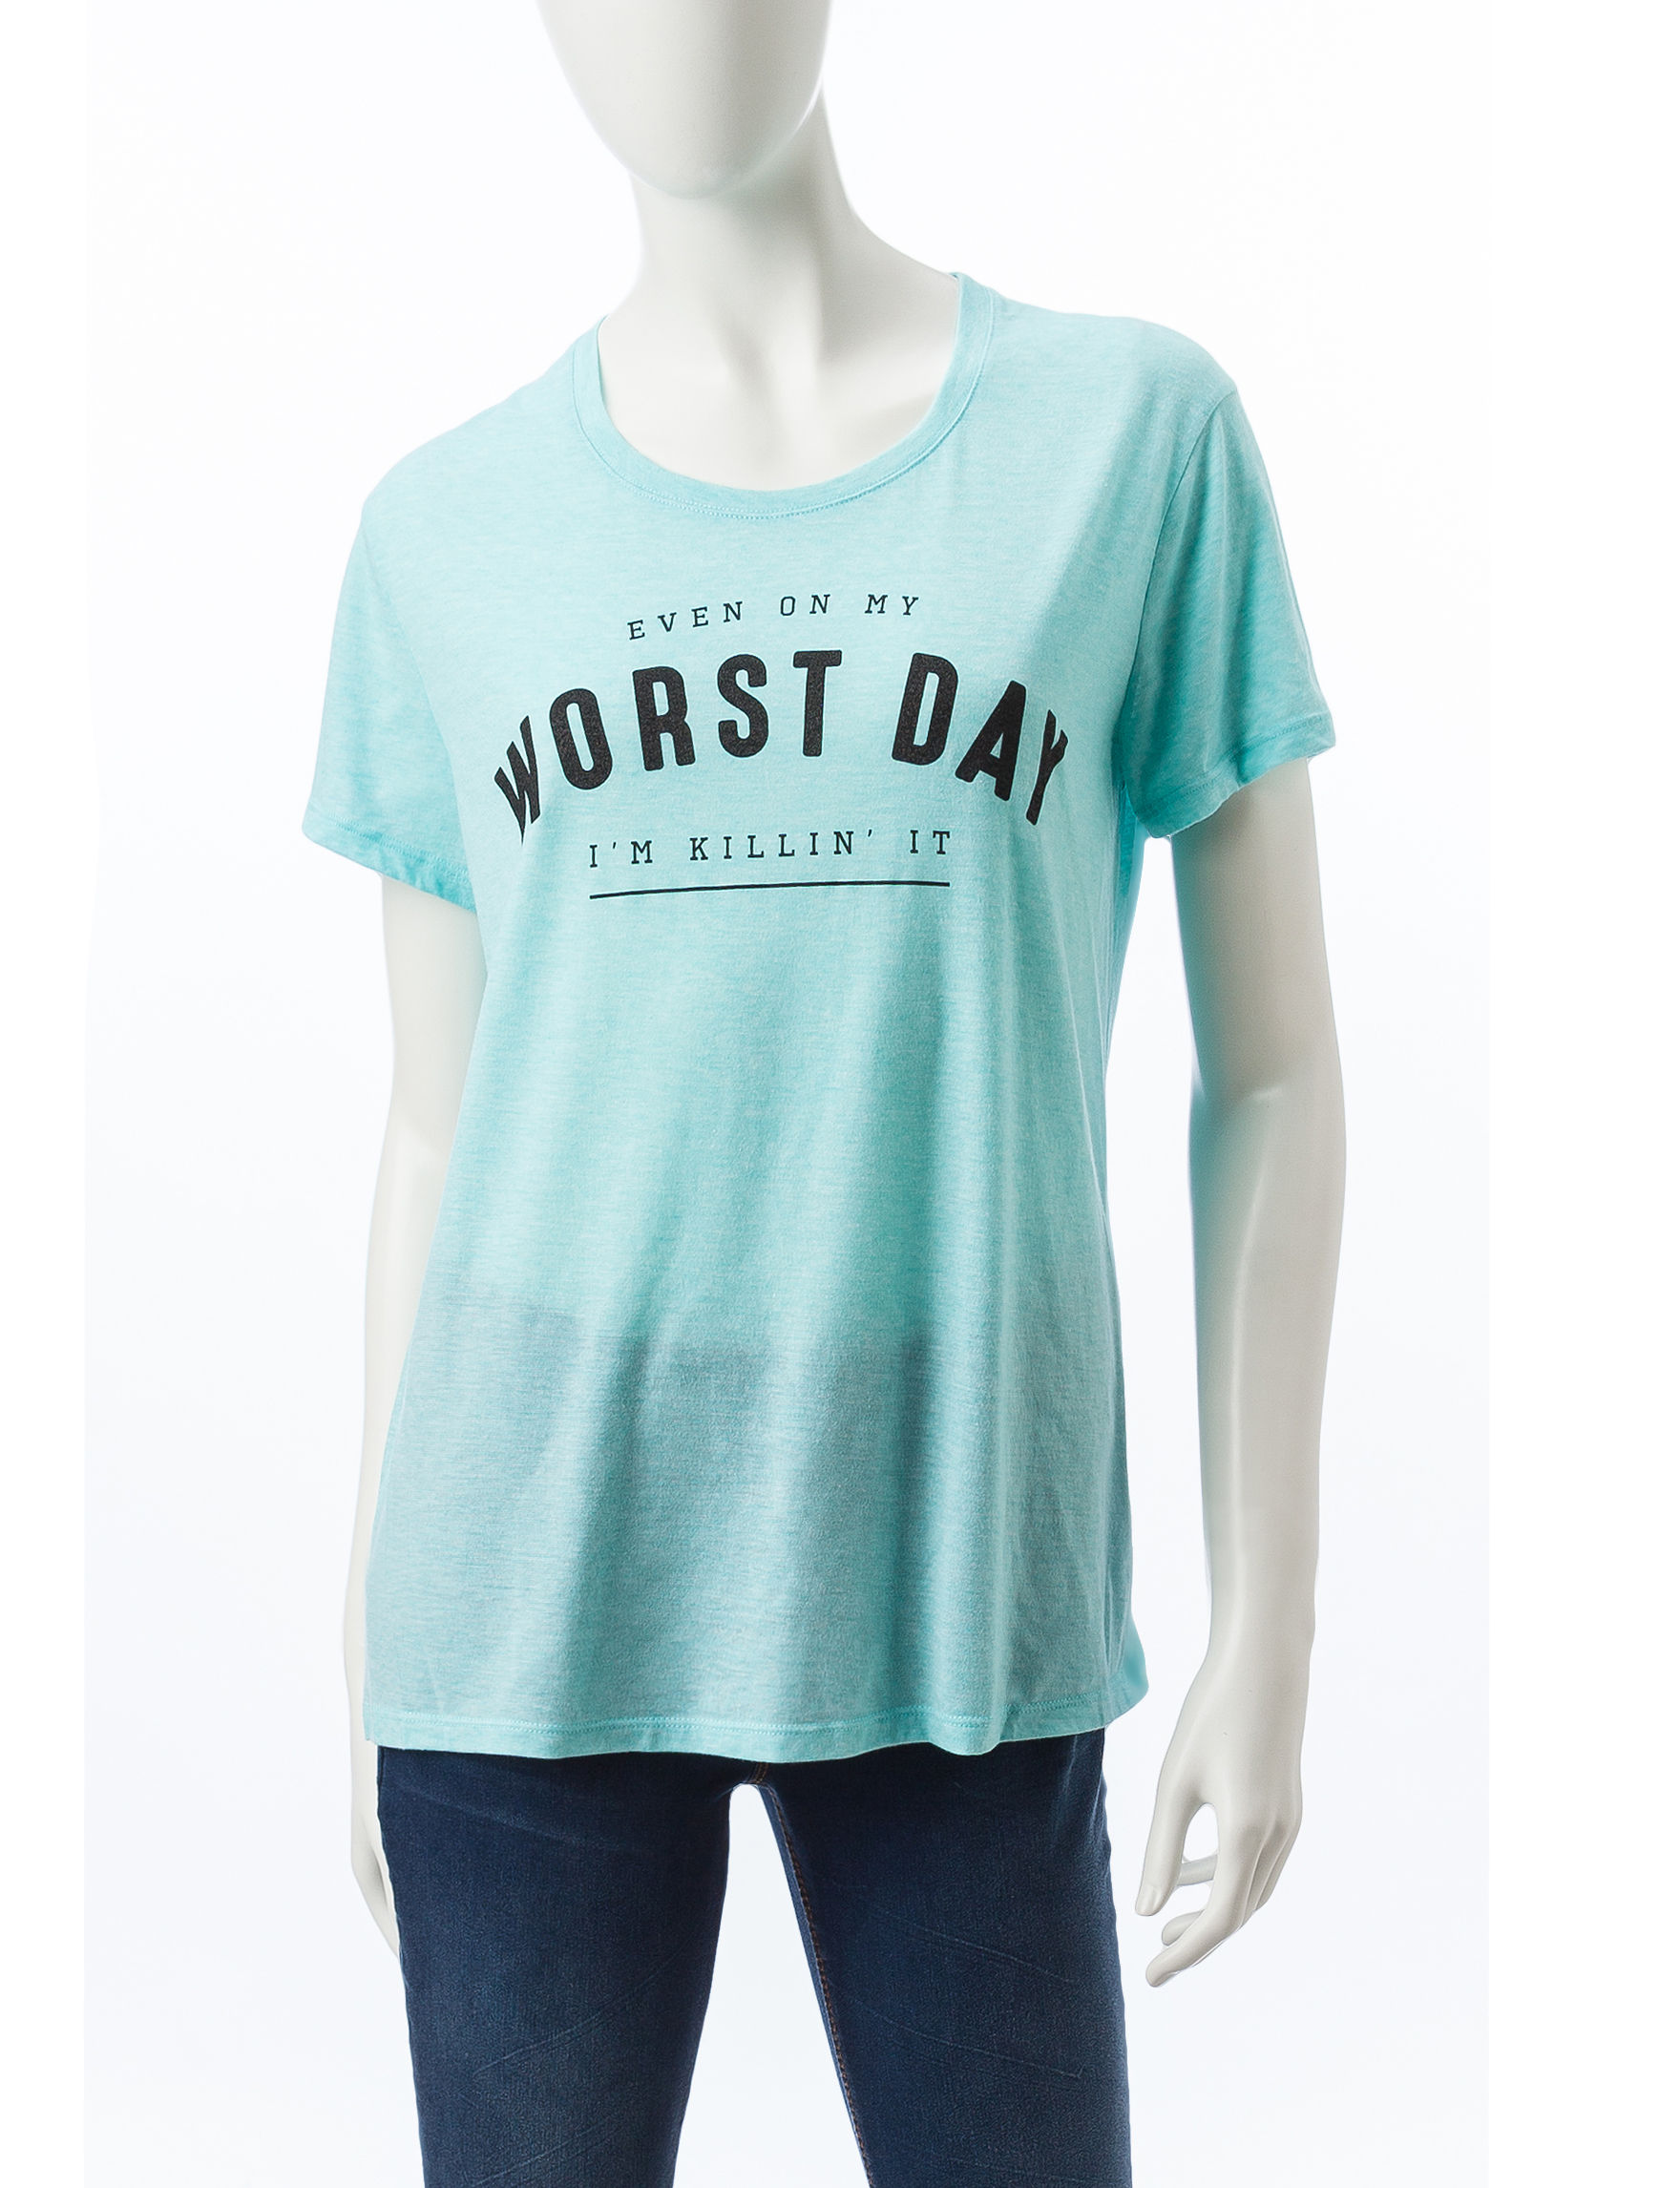 Cold Crush Mint Tees & Tanks